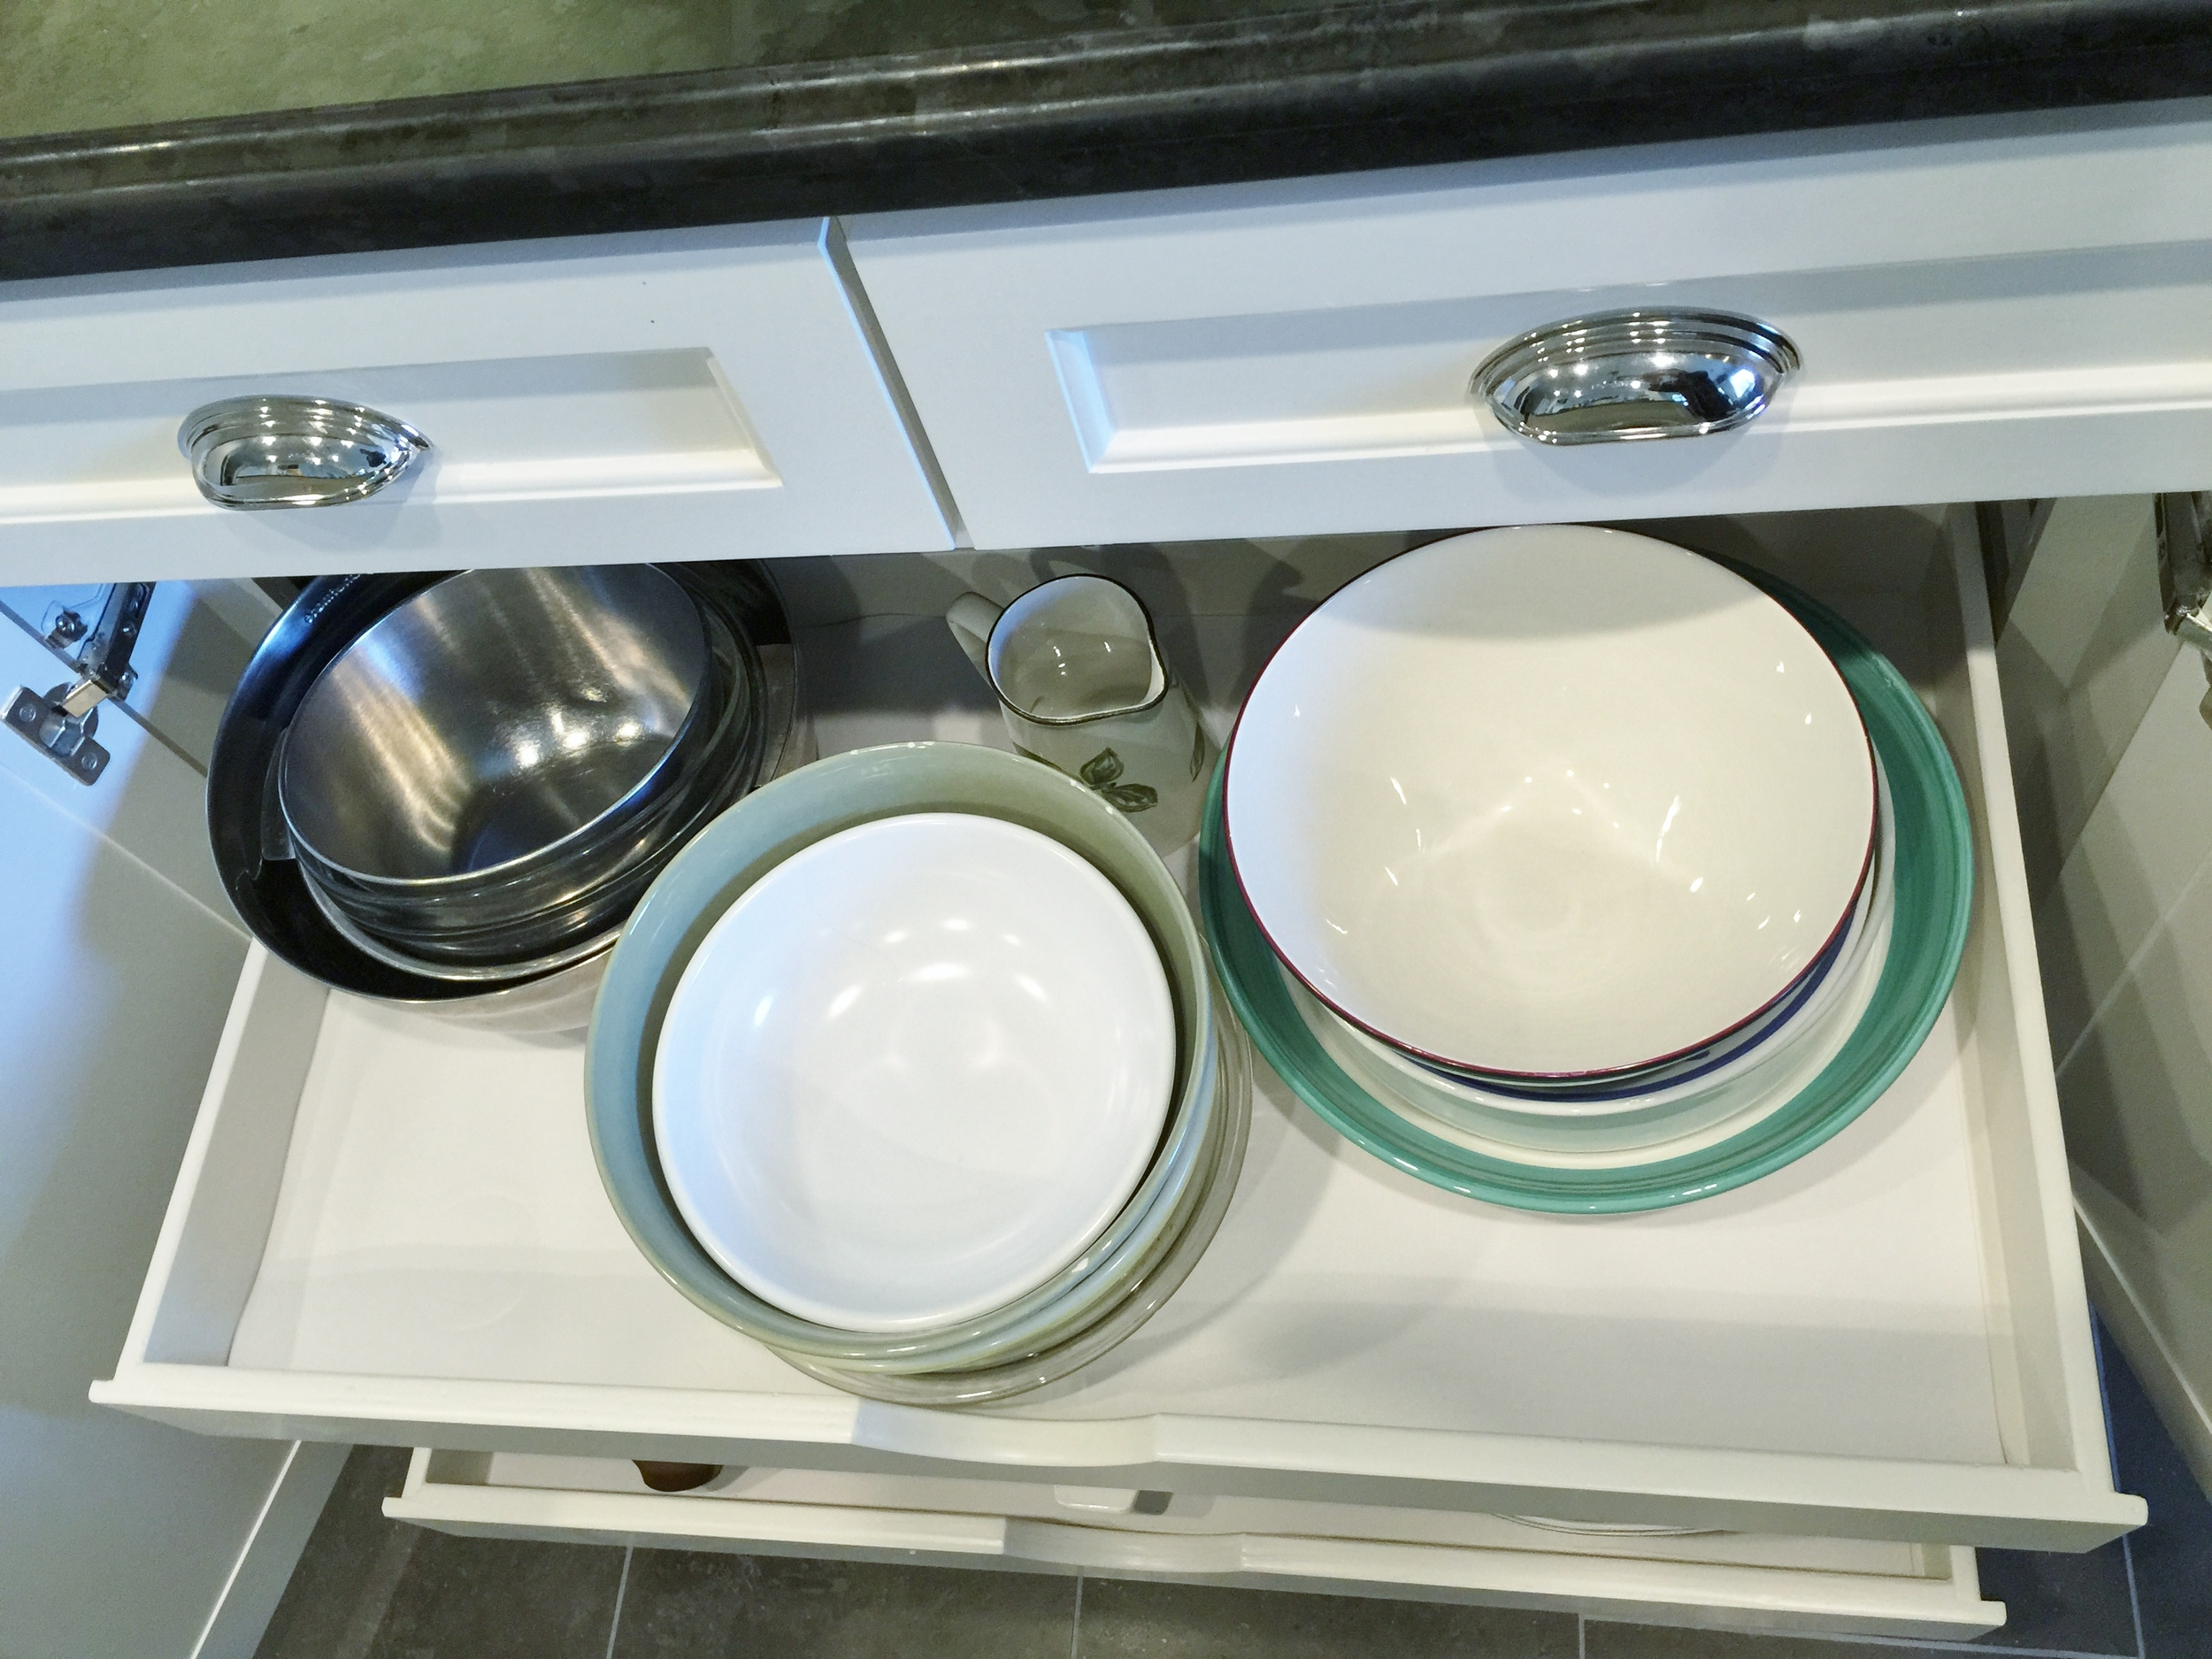 Wide pull-out drawers | interior Designer: Carla Aston